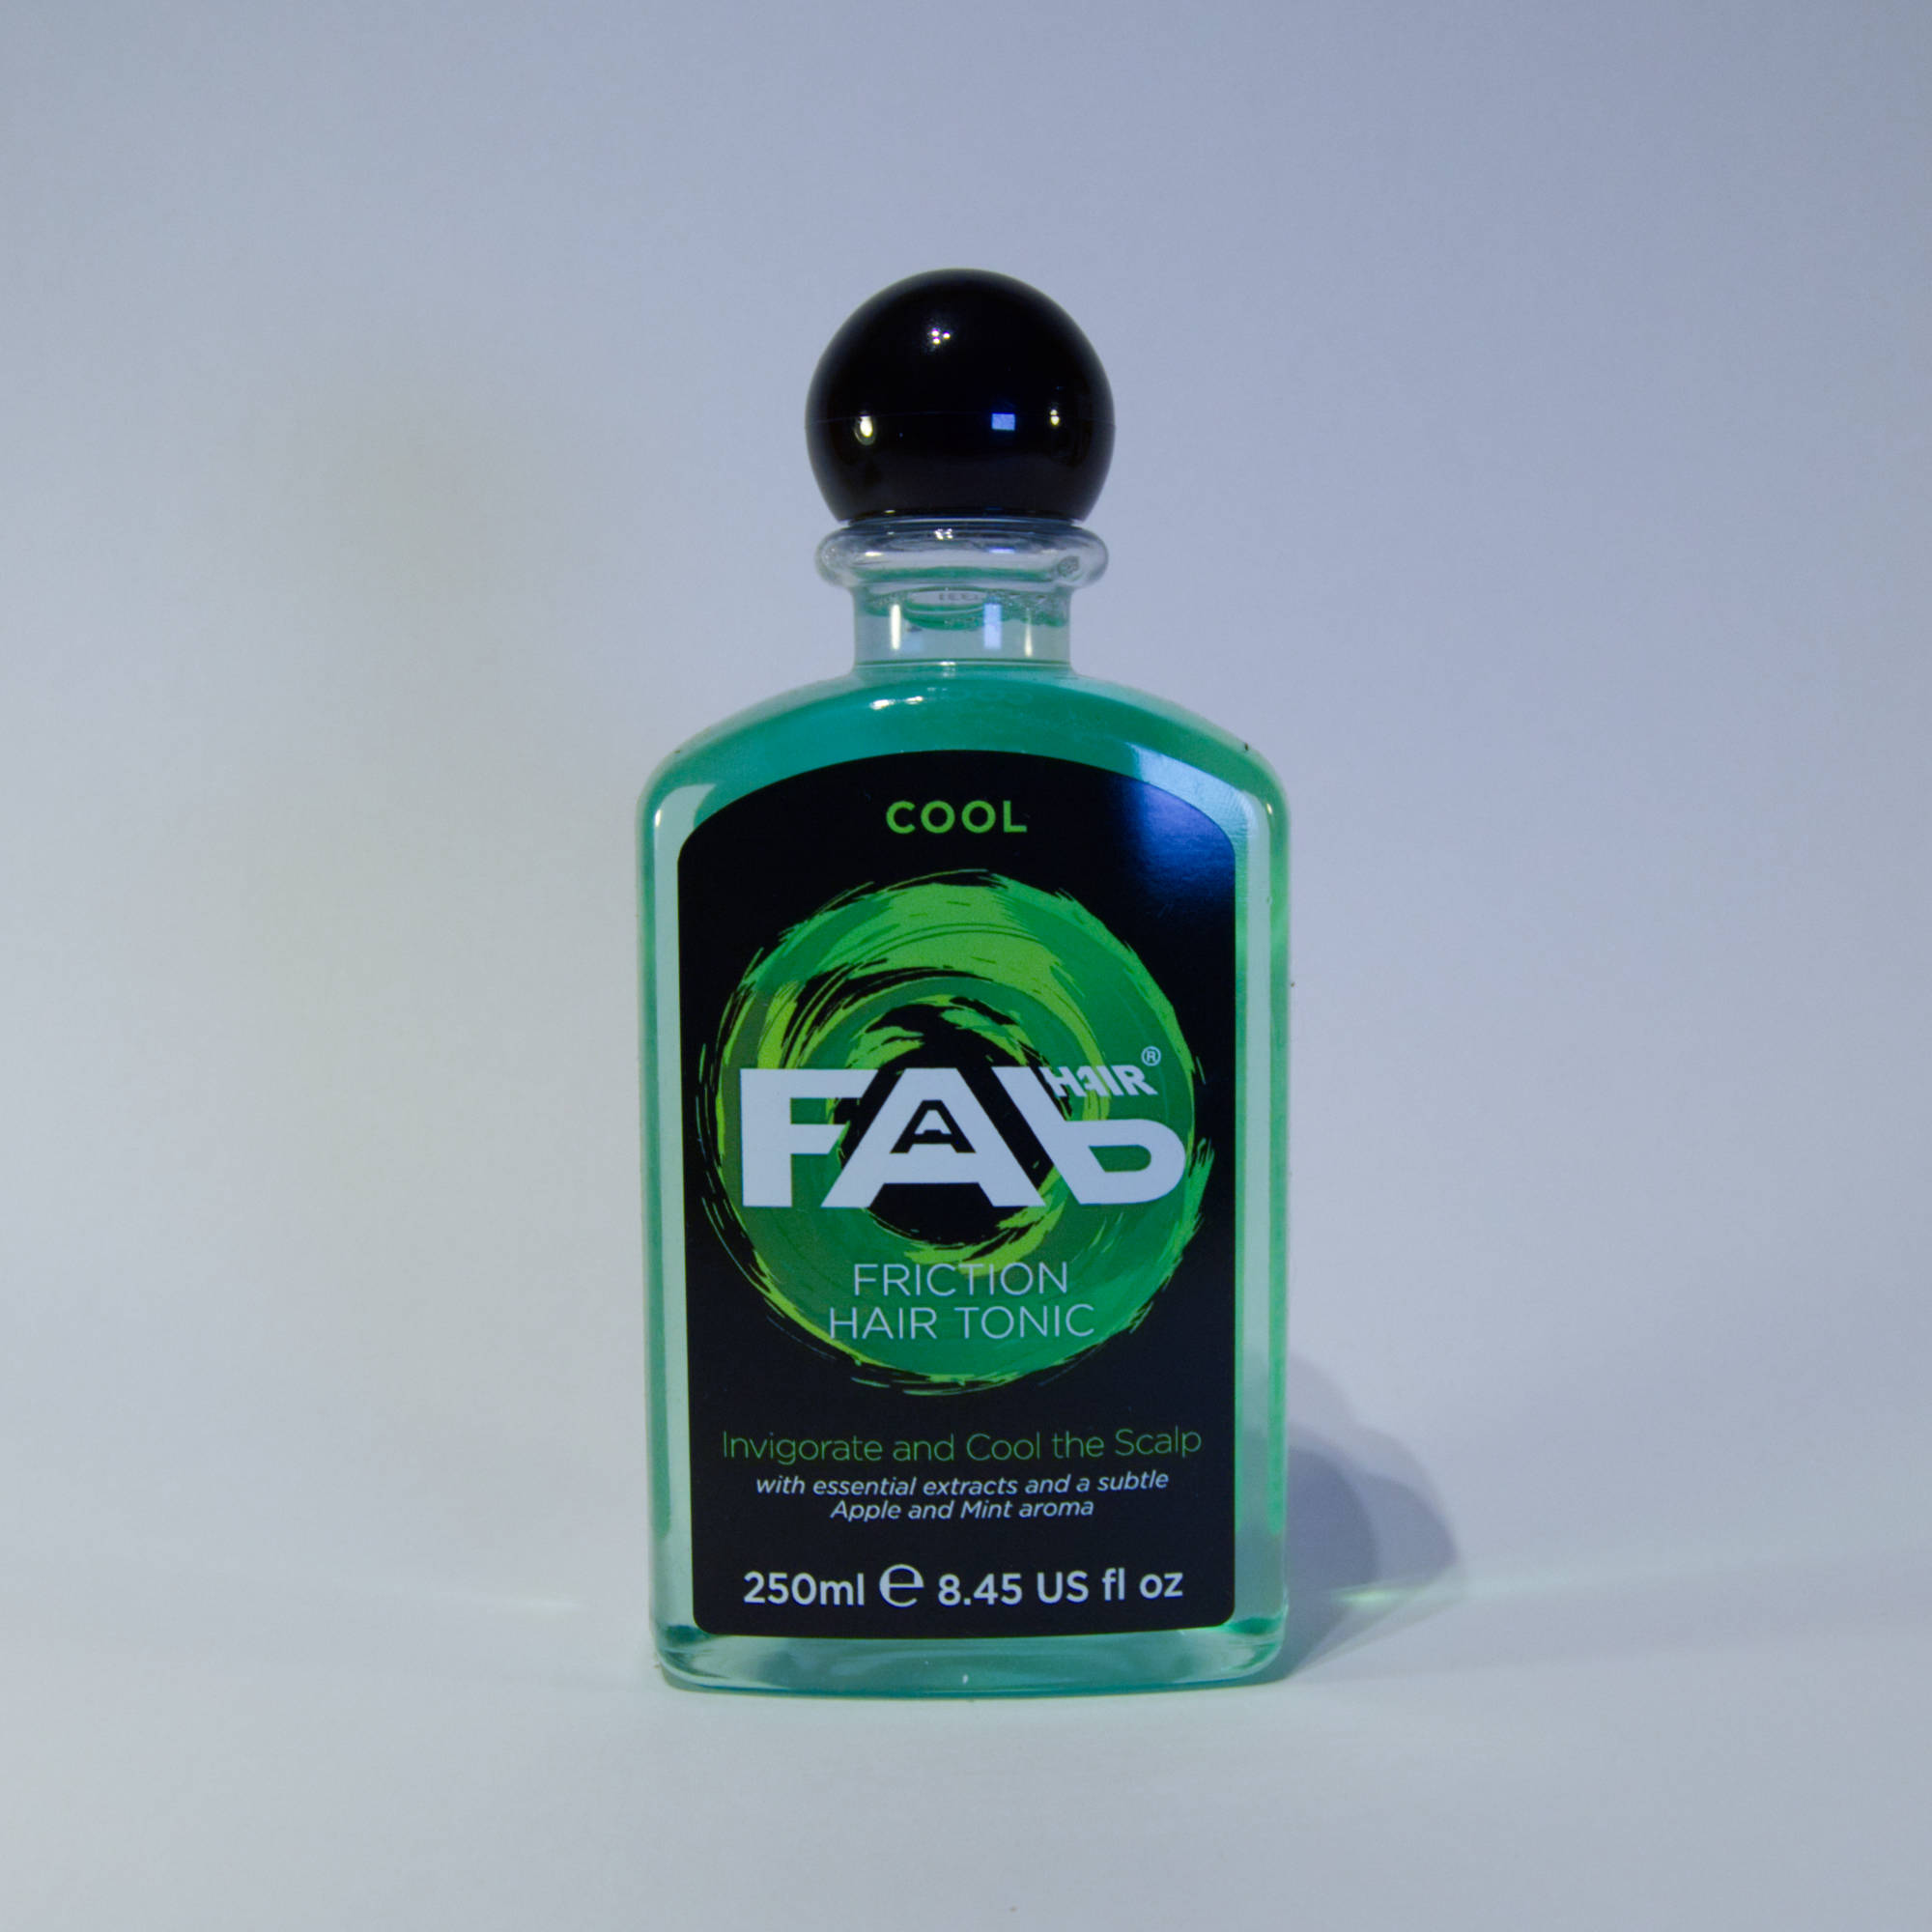 250ml bottle of Cool flavoured FAB friction hair tonic